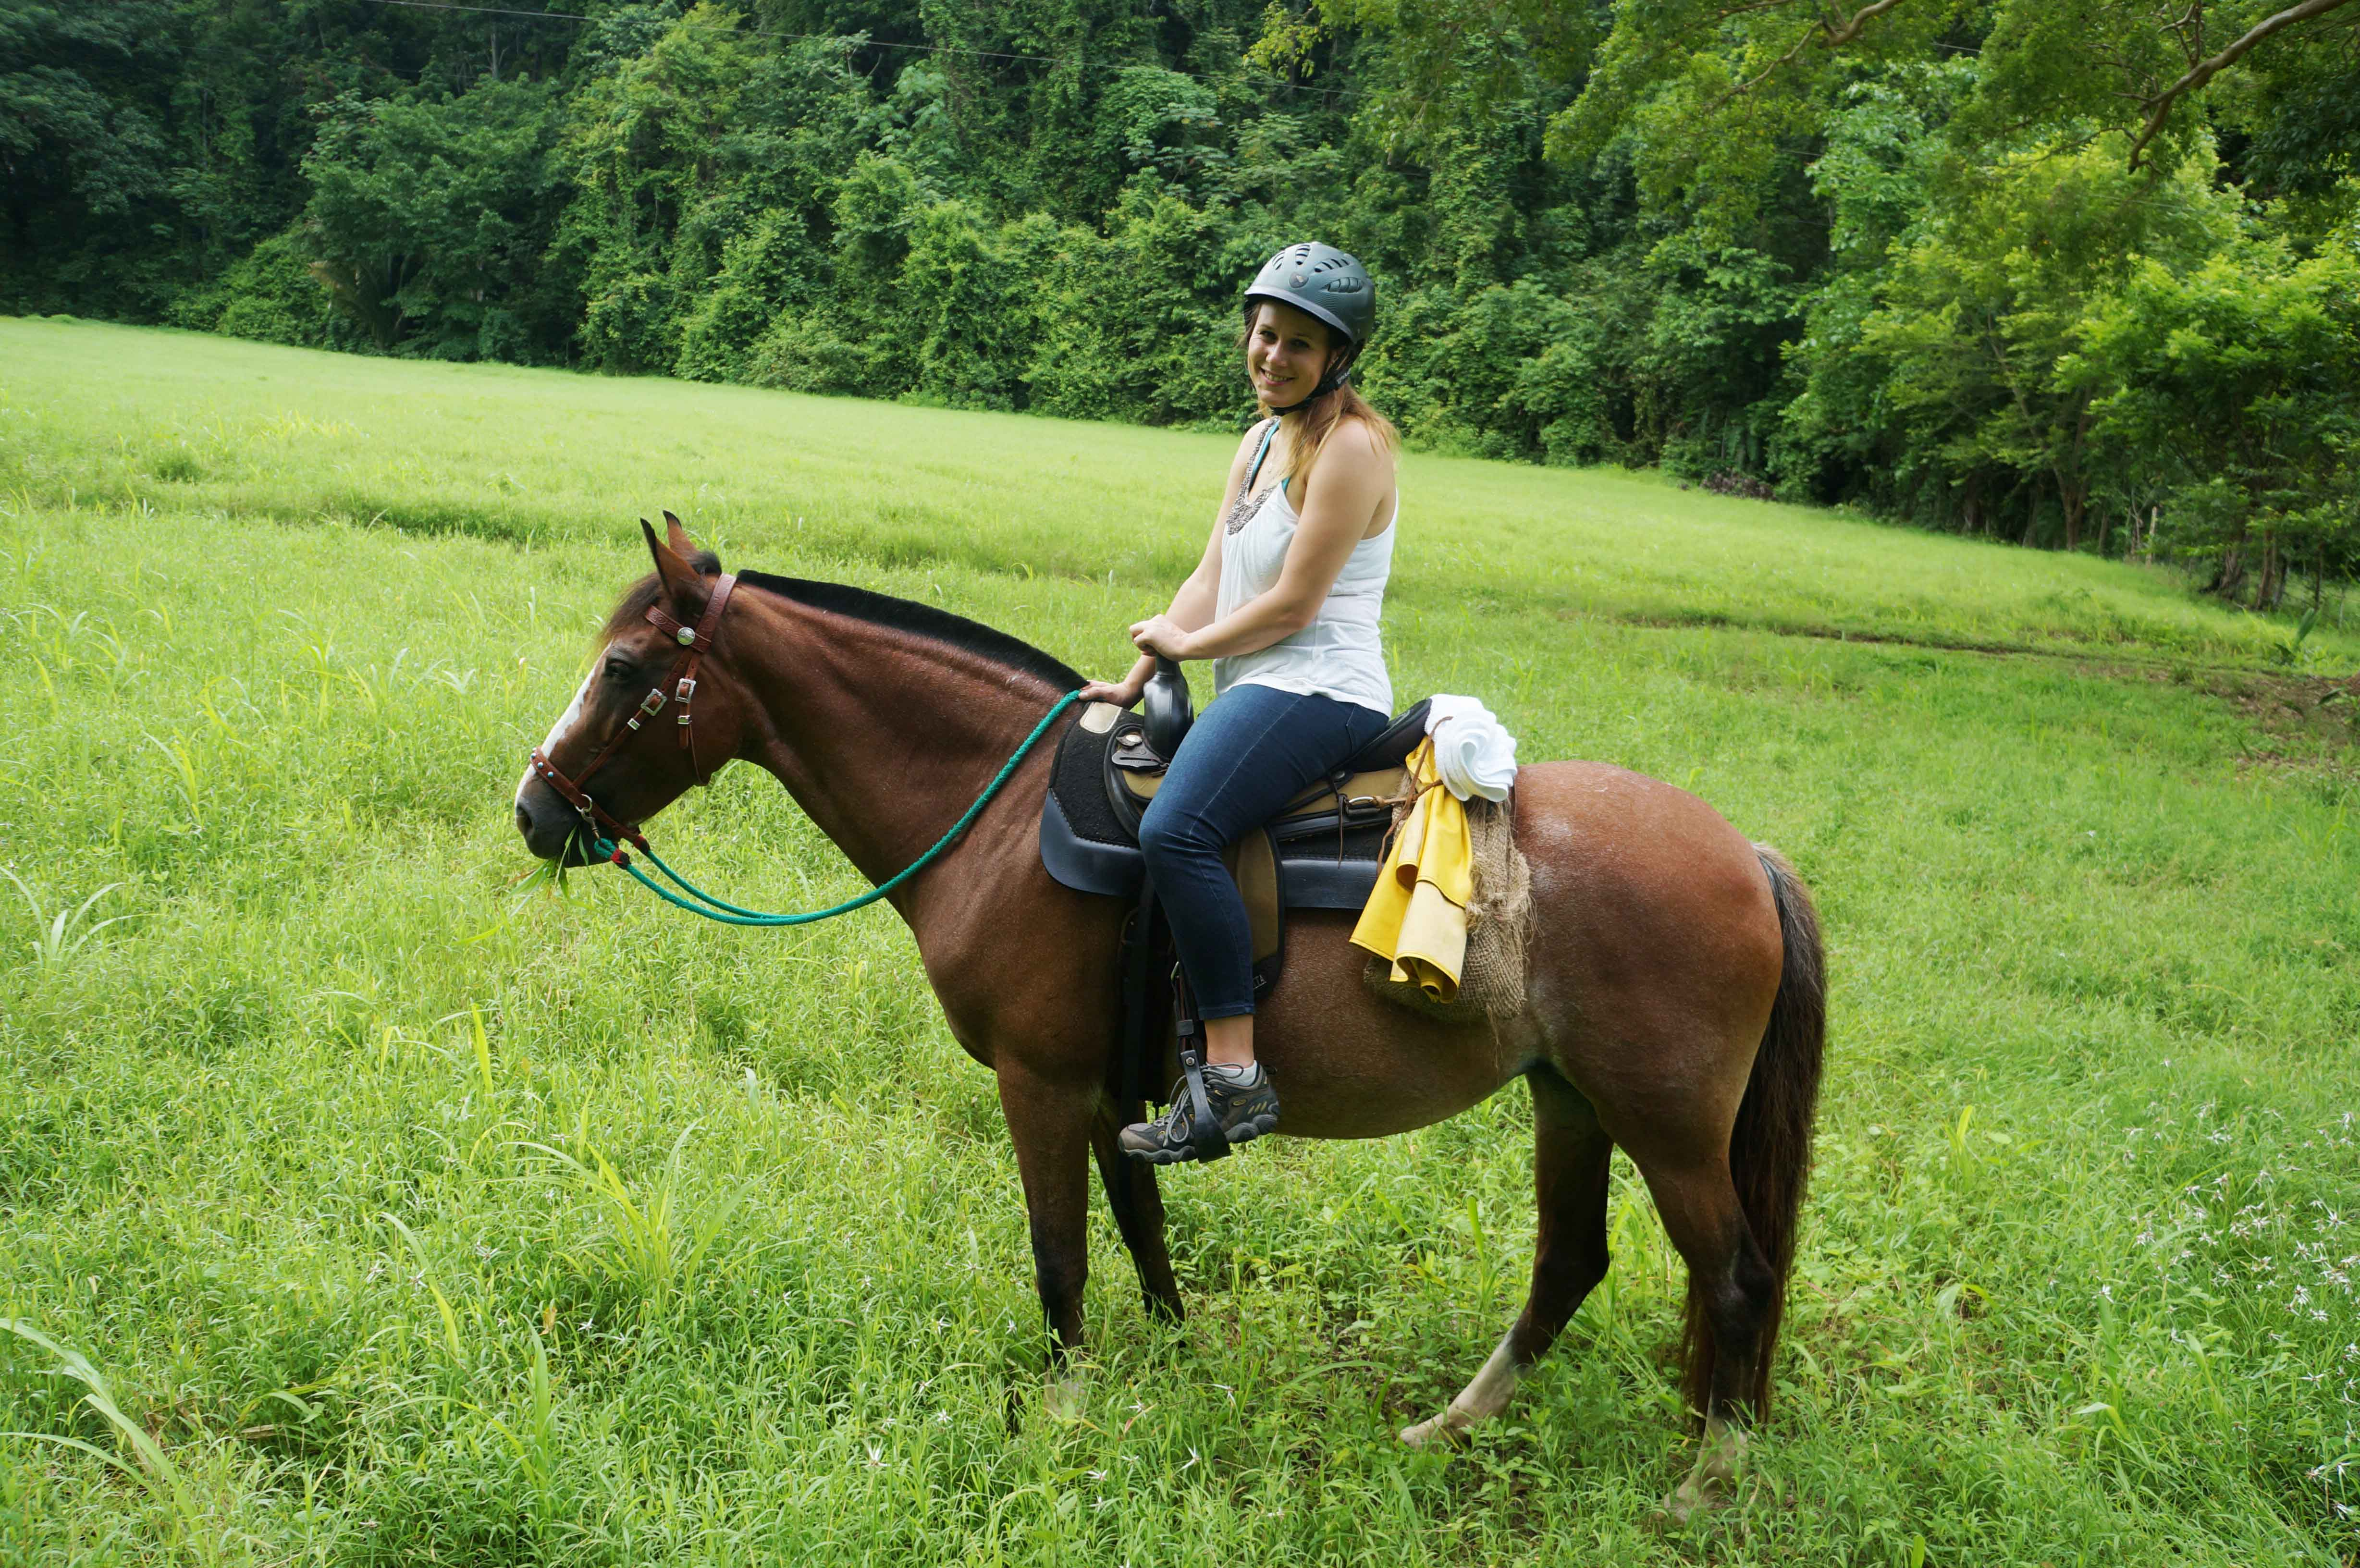 Horseback Riding in Costa Rica with Discovery Horseback Tours